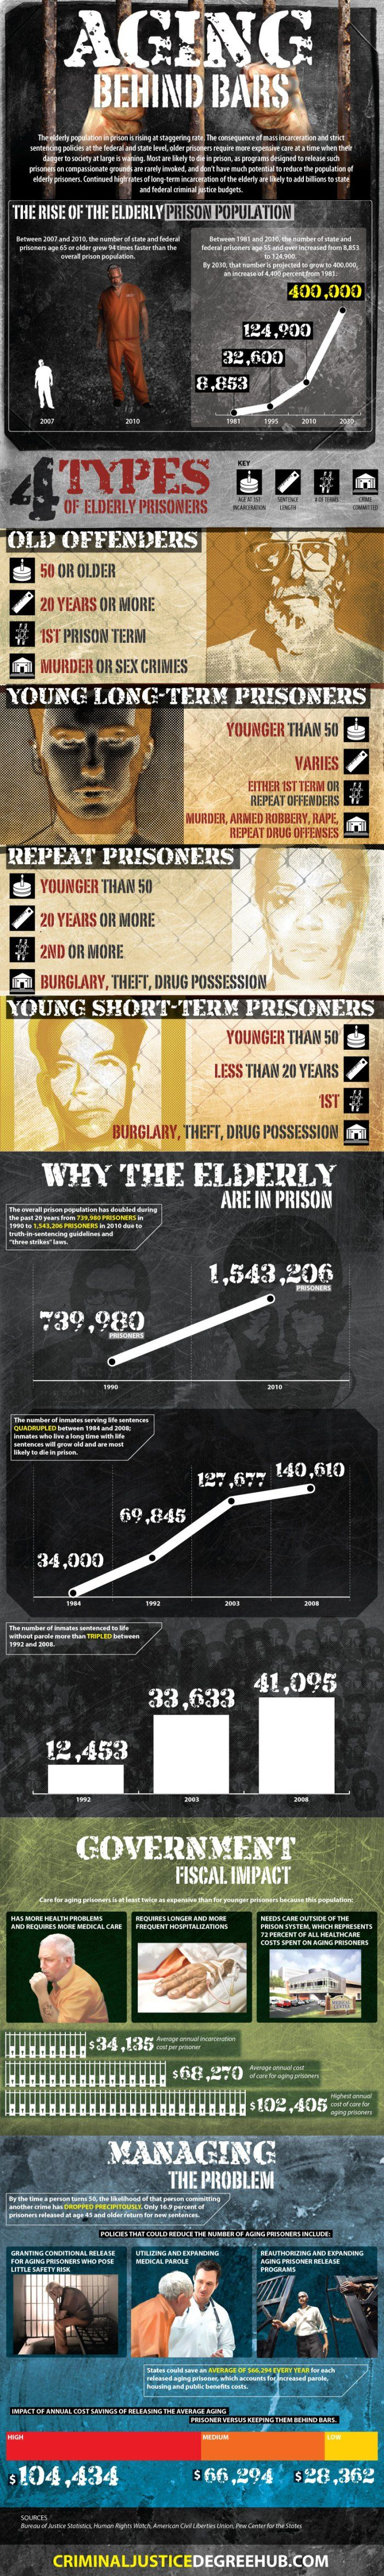 The aging population in prisons is rising at a staggering rate.